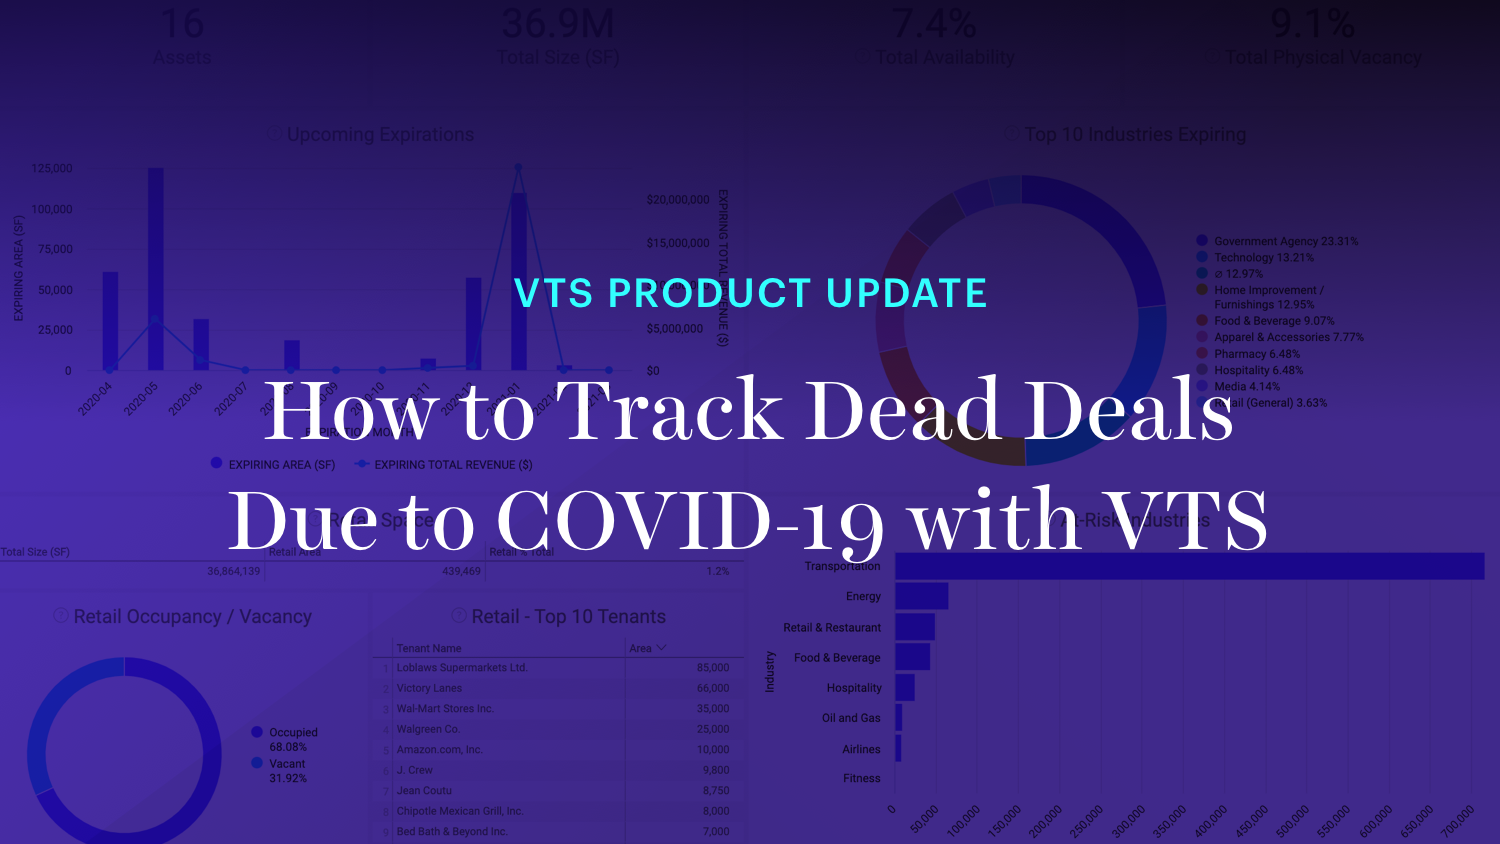 How to Track Dead Deals Due to COVID-19 with VTS